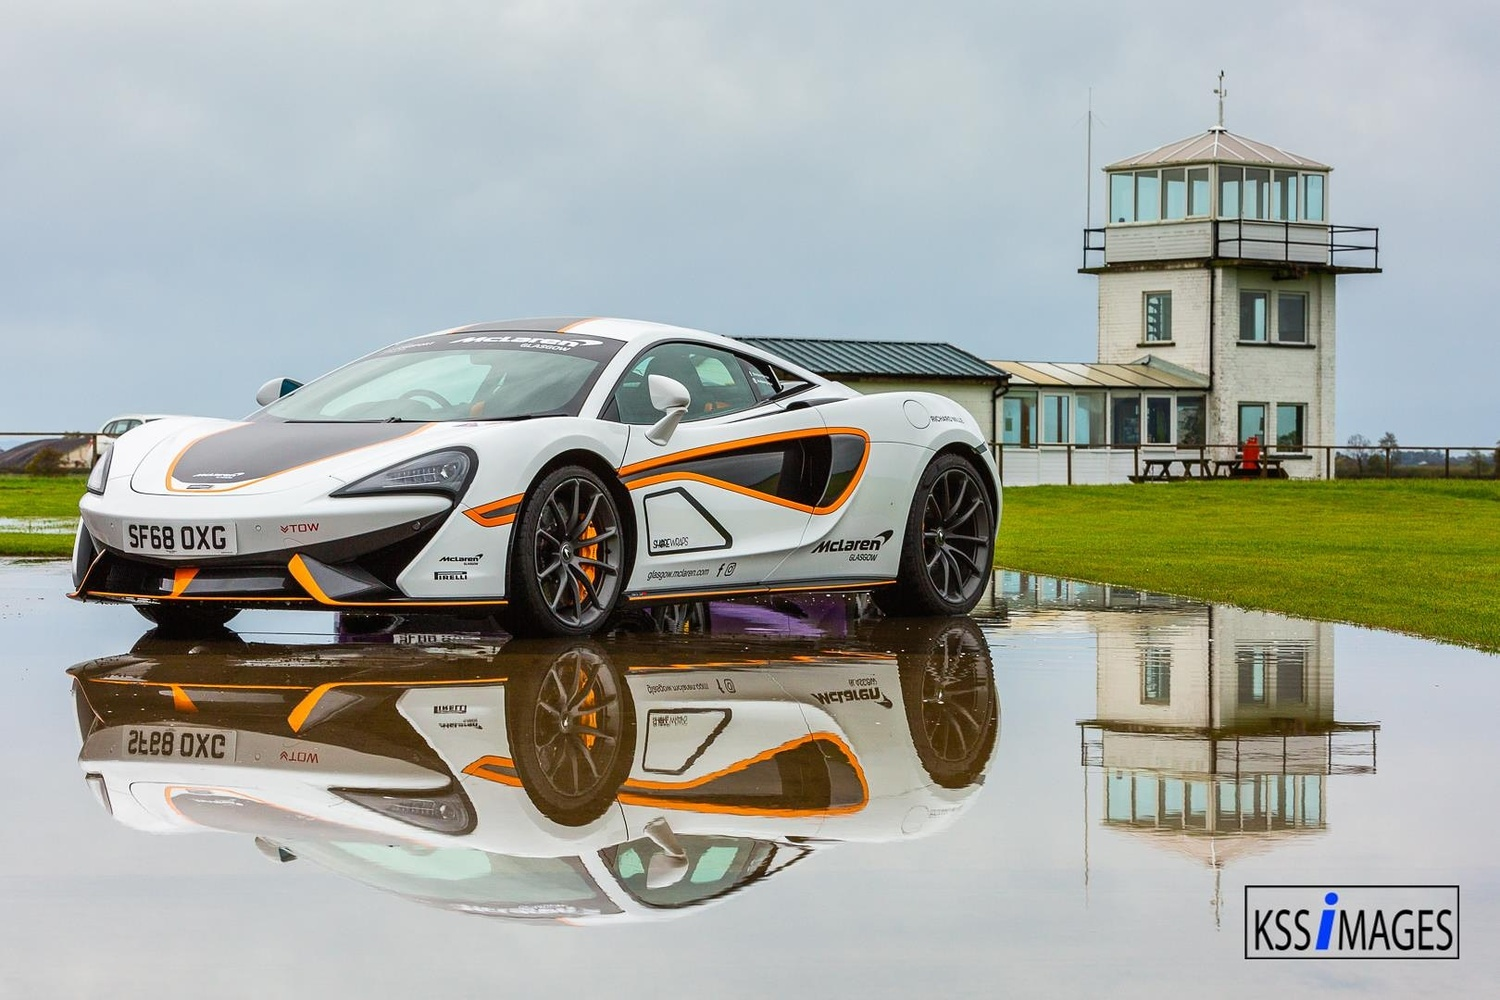 McLaren 570S Supercar at airport by Kevin Sloan